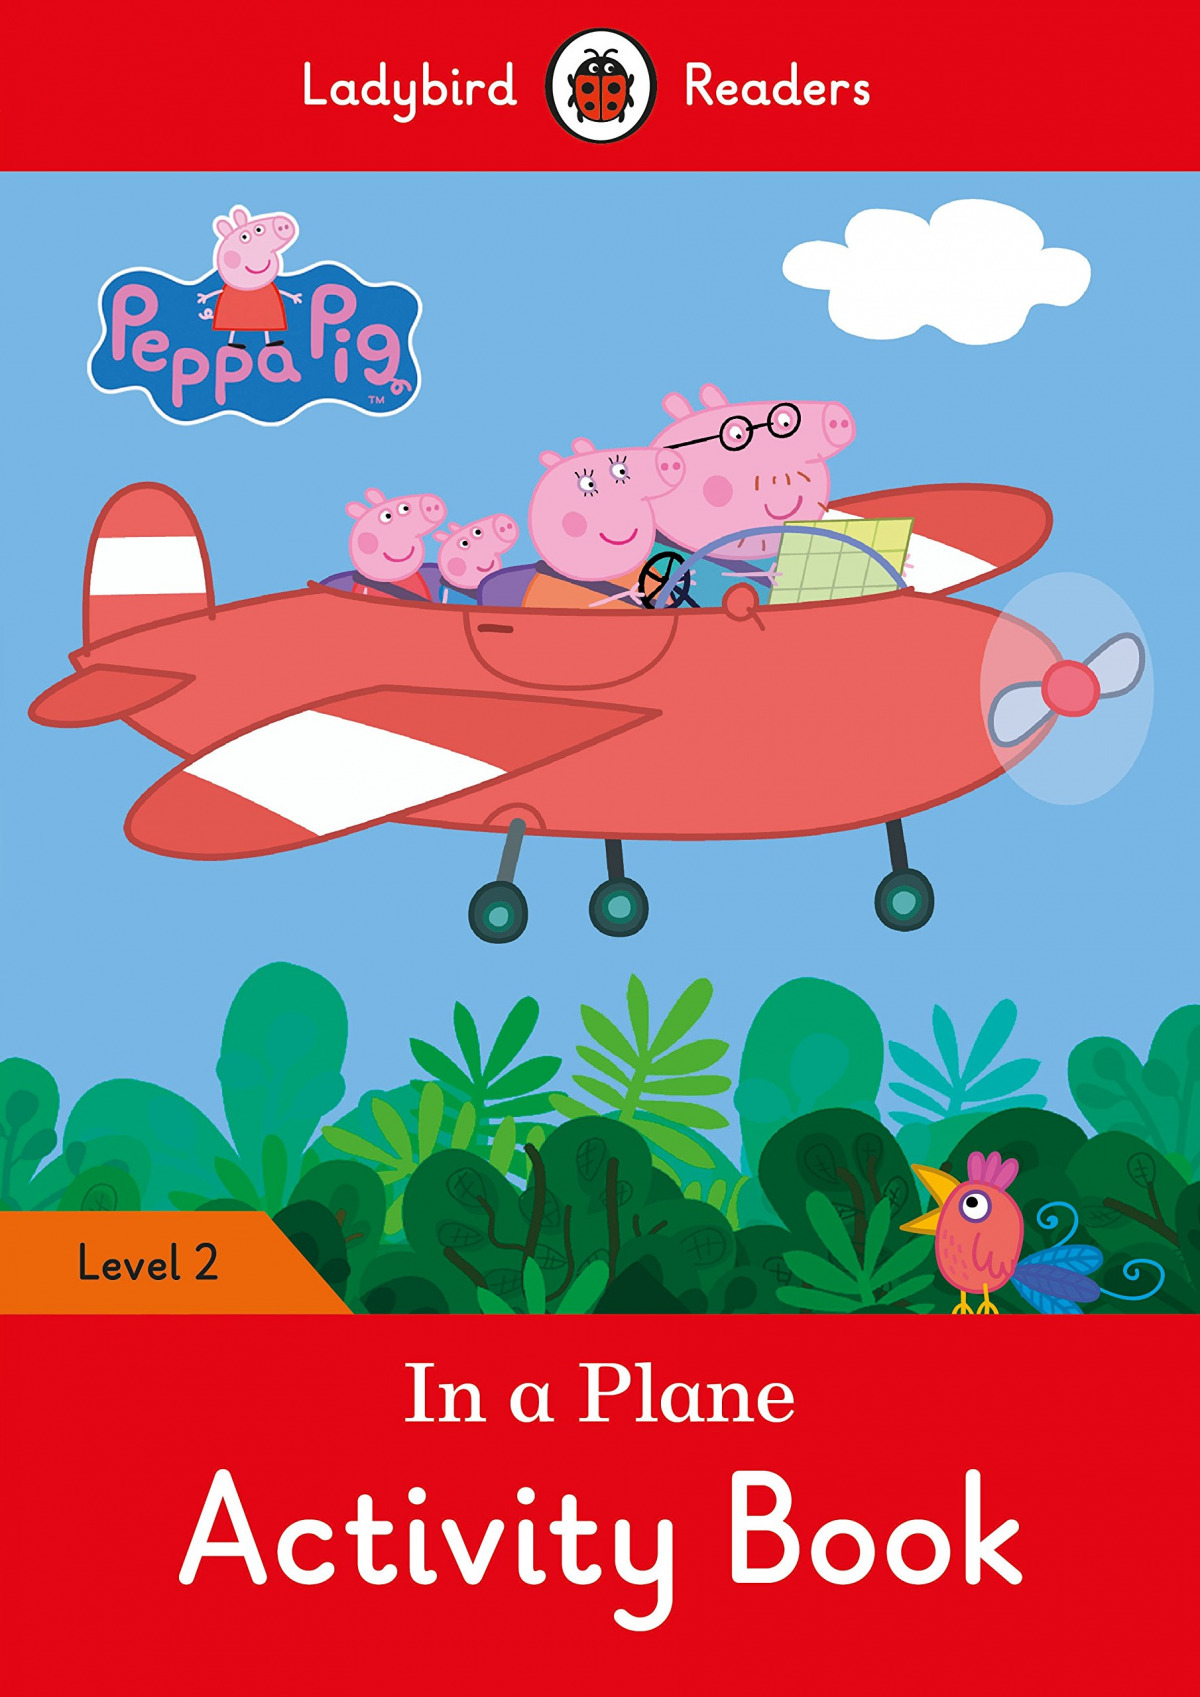 IN A PLANE. PEPPA PIG. ACTIVITY BOOK